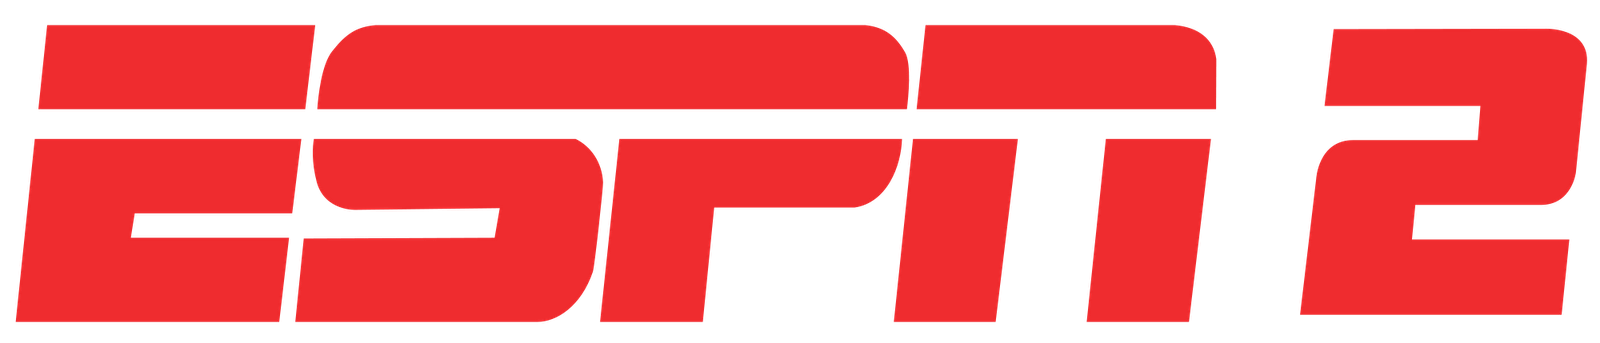 ESPN2 has picked up the UALR-Middle Tennessee game on Feb  11 at the    Espn Logo